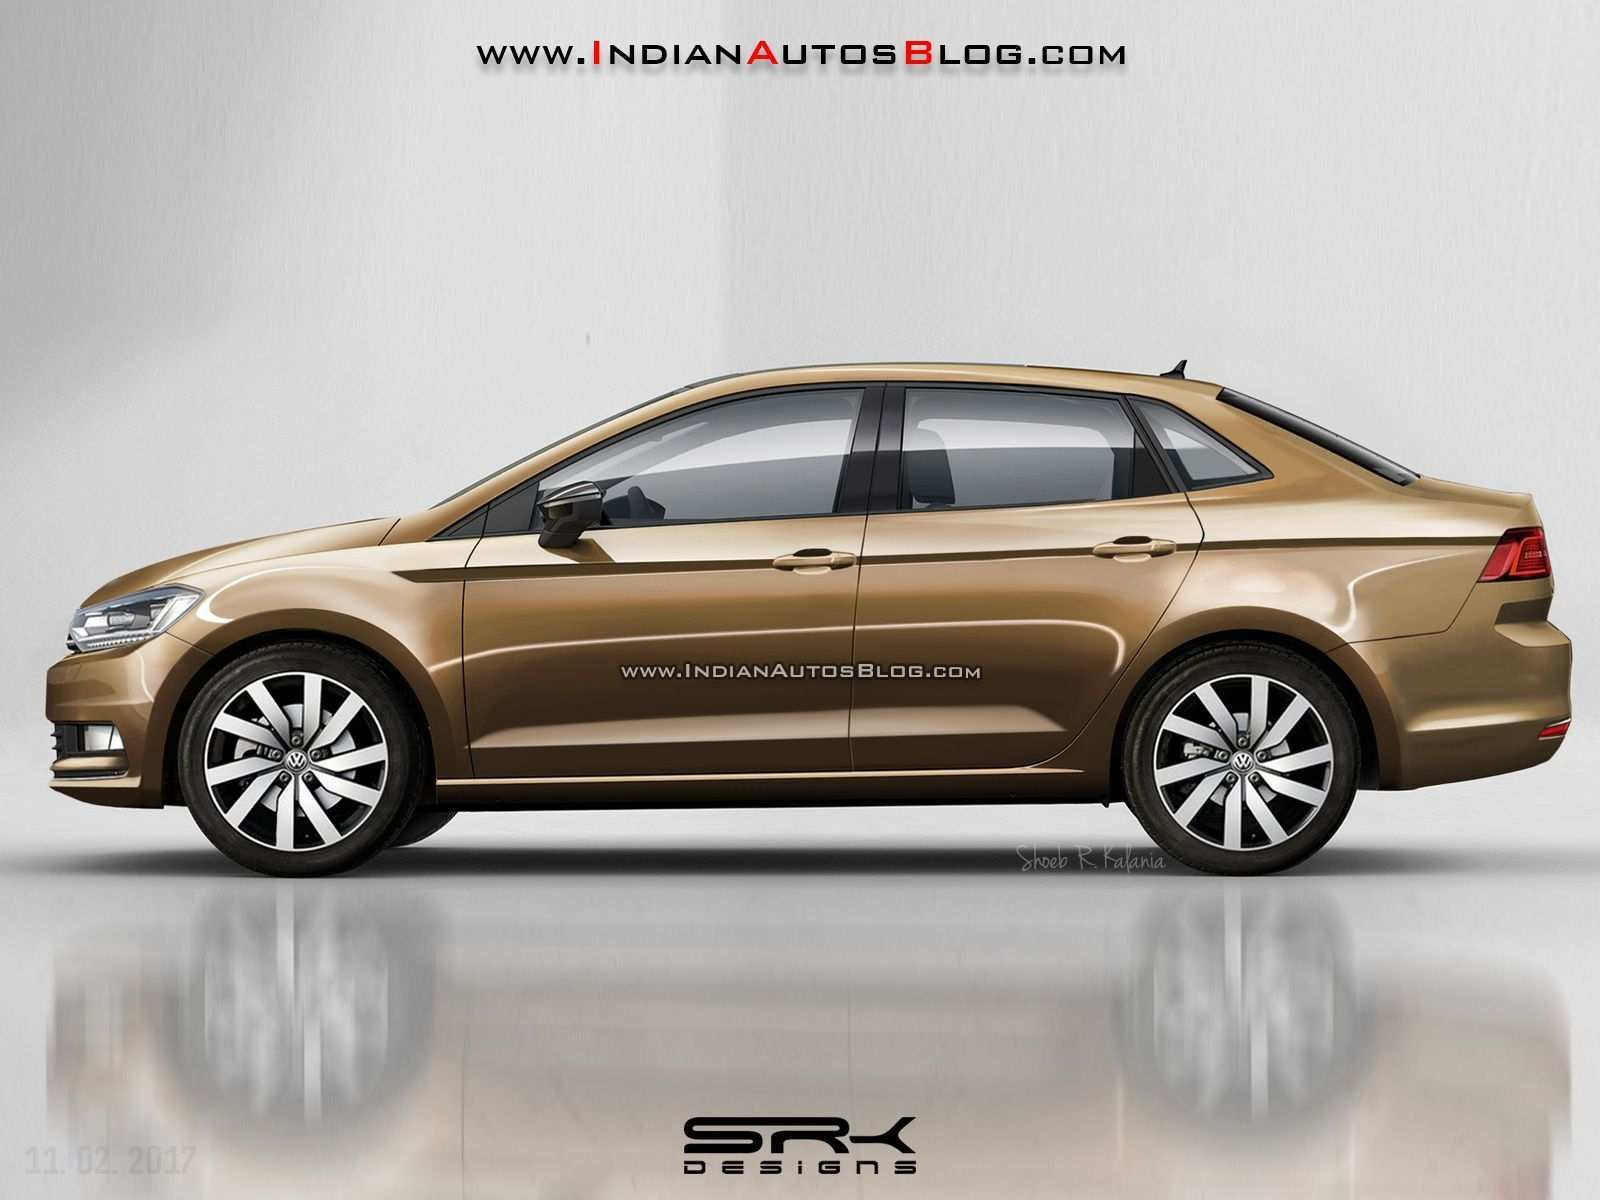 48 New New Volkswagen Vento 2019 India Picture Release Date And Review Performance and New Engine for New Volkswagen Vento 2019 India Picture Release Date And Review